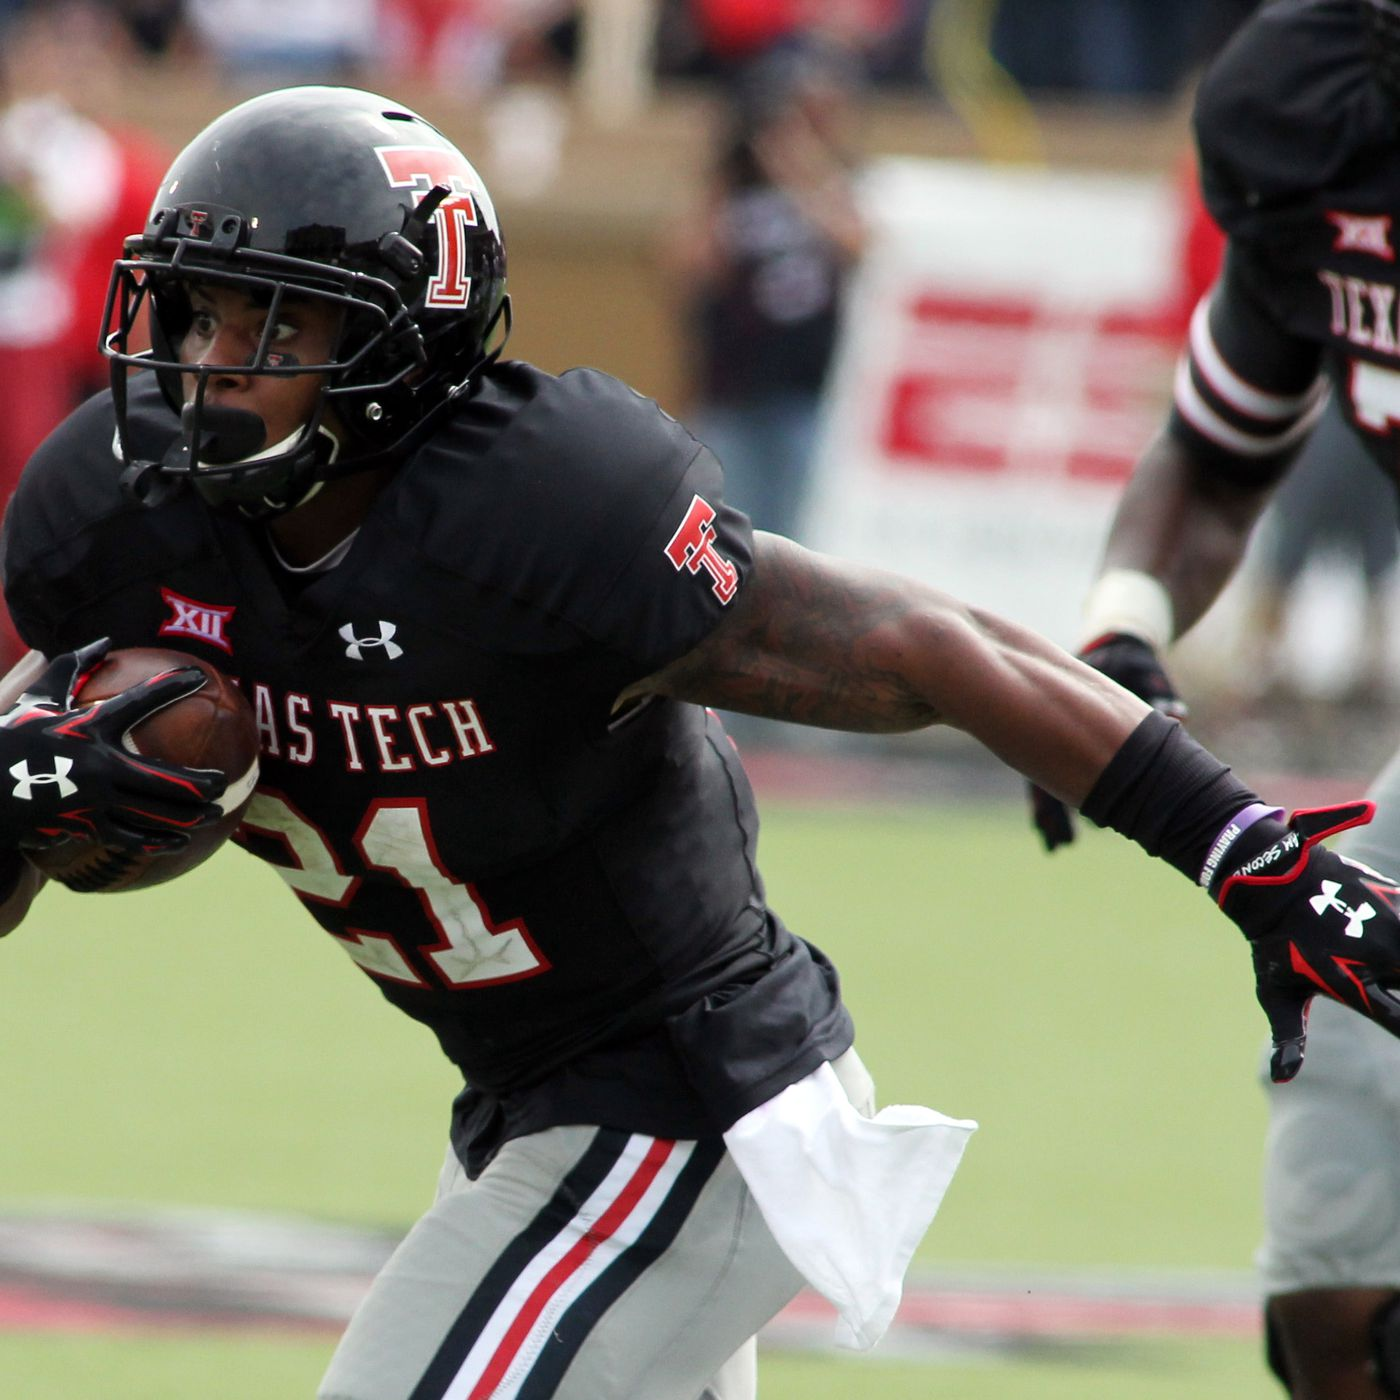 43905589fb1 An Open Letter to Under Armour on Texas Tech s Uniforms - Viva The ...